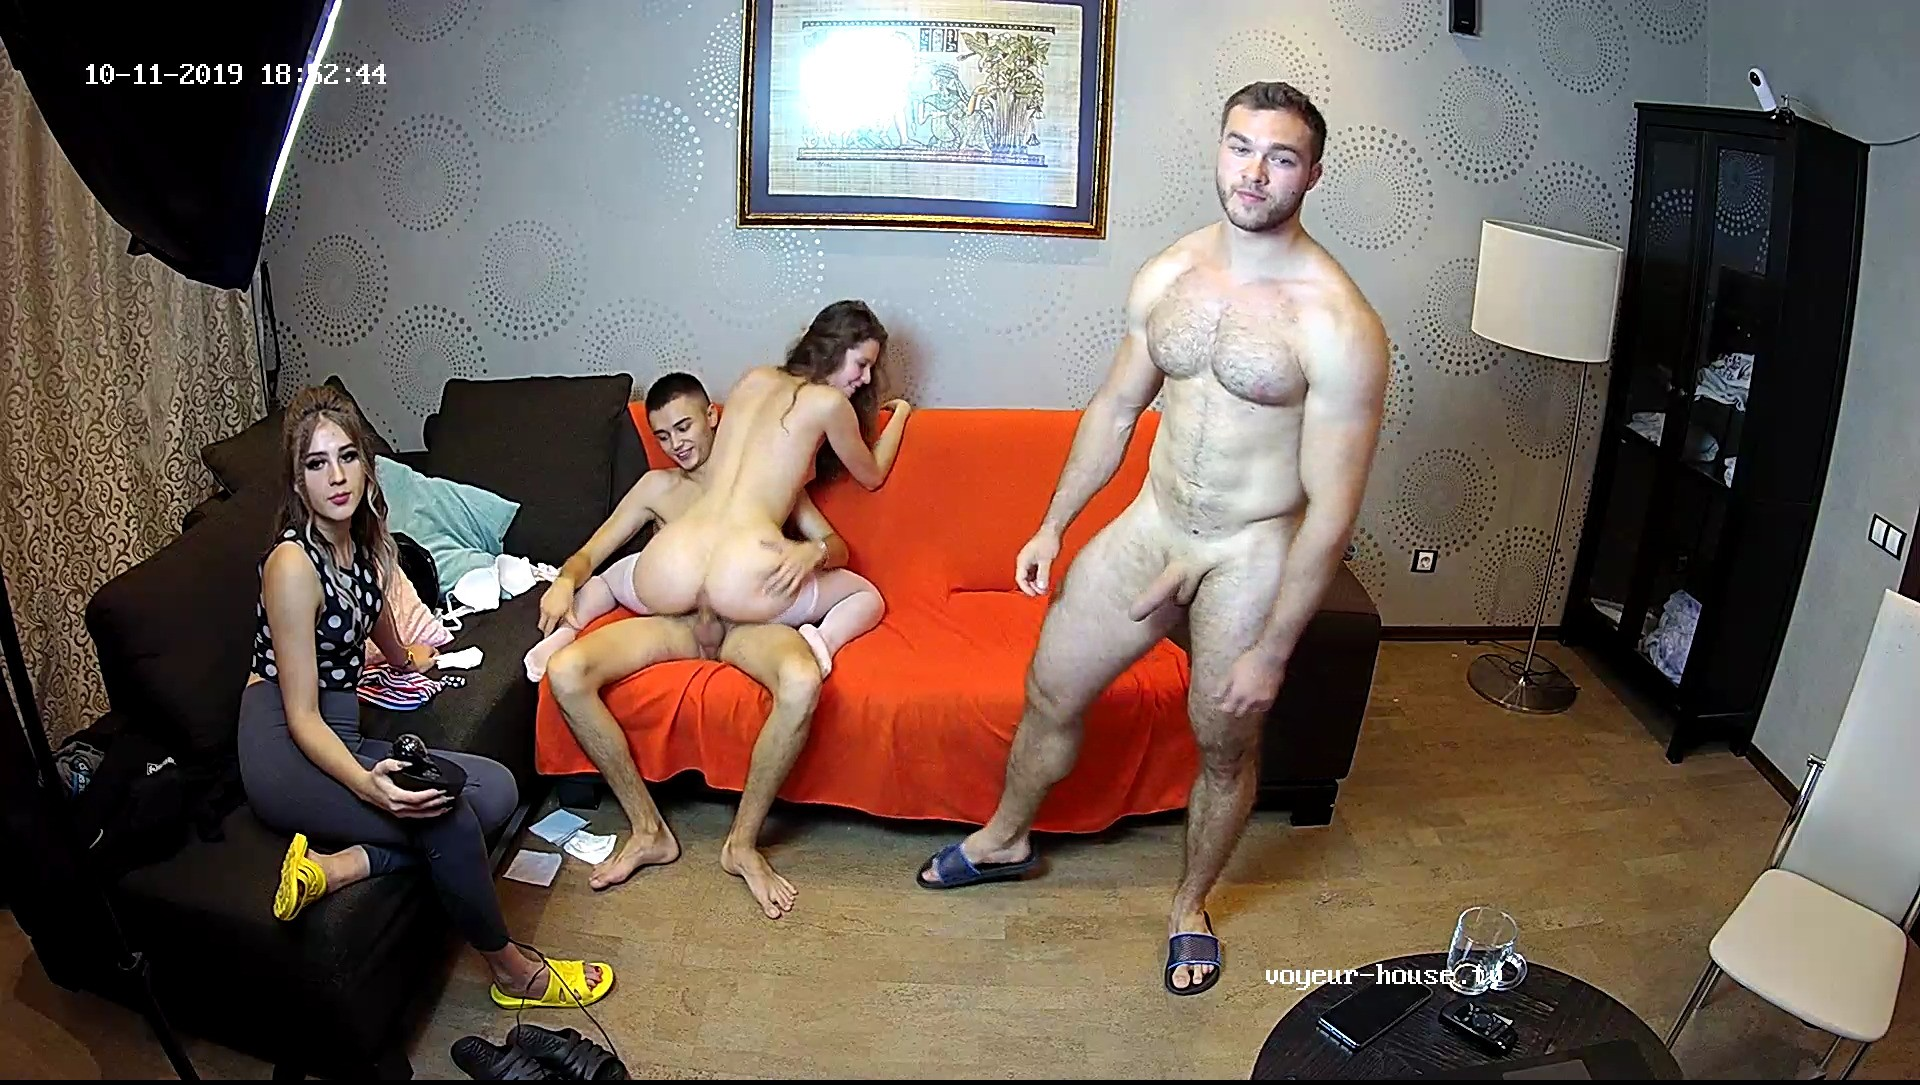 Sofi, Kirill & Guests Friday Camshow 11 Oct 2019